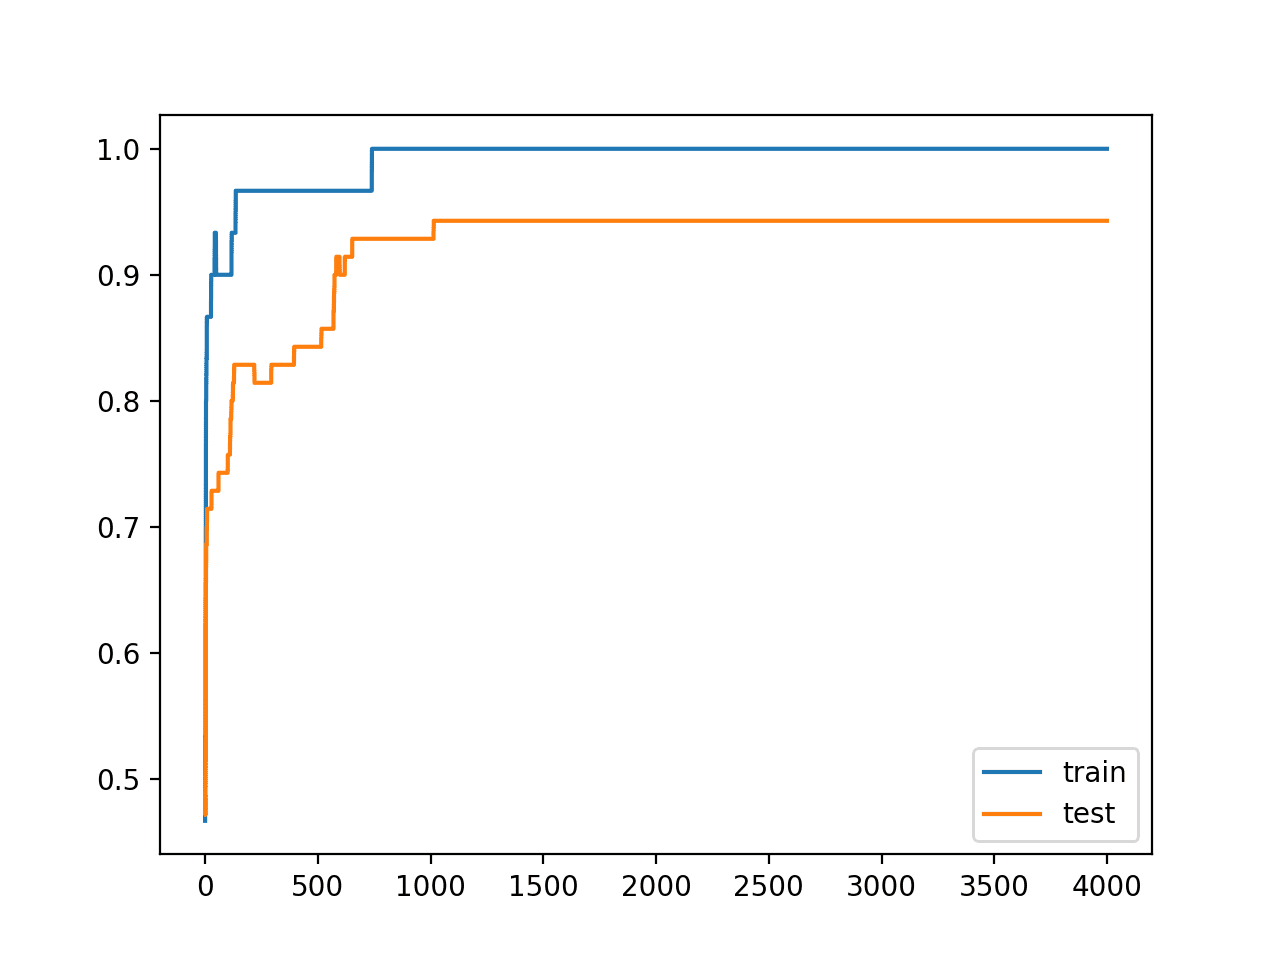 Line Plots of Accuracy on Train and Test Datasets While Training Without Overfitting